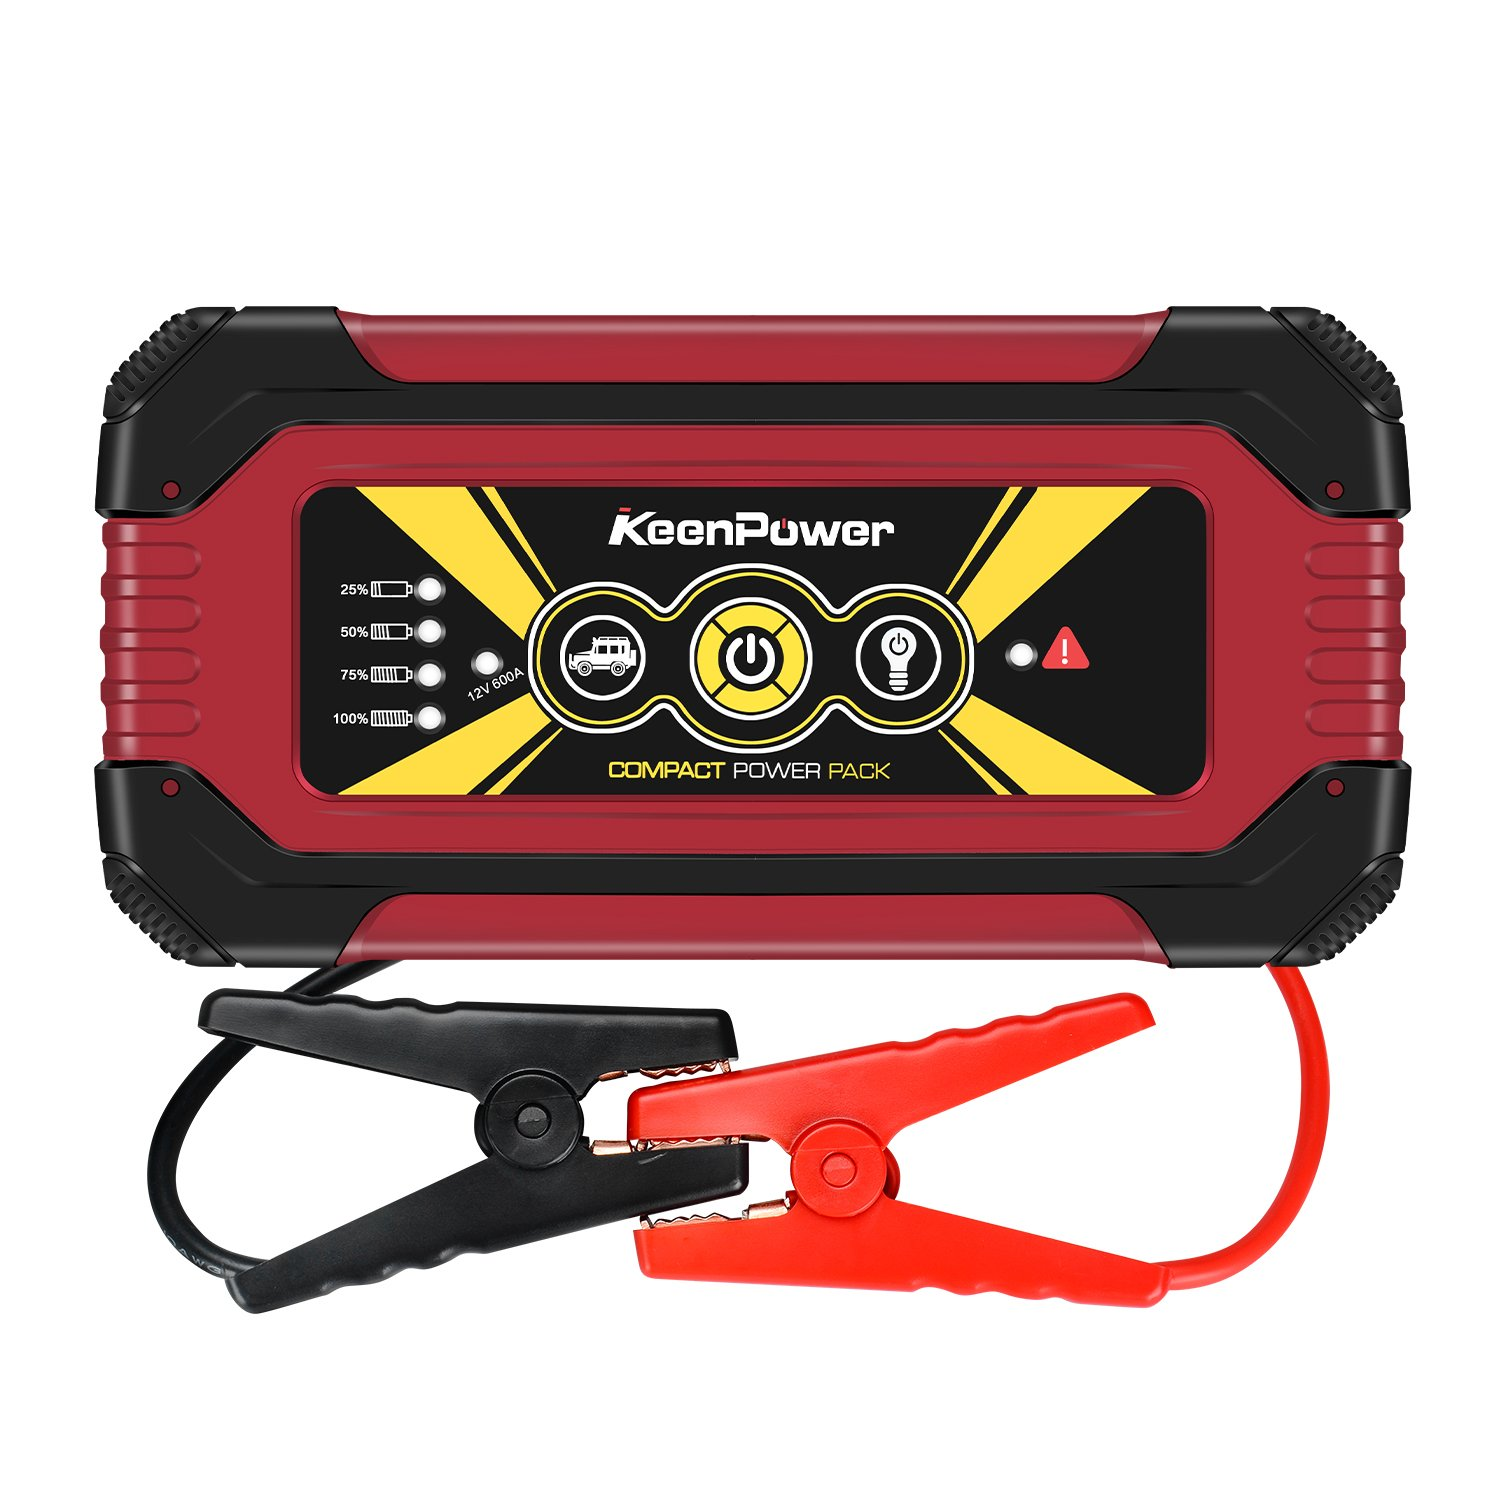 Keenpower Portable Car Jump Starter 600A Peak 12000mAH (Up to 6.0L Gas Engine) Auto Battery Booster Power Pack Phone Power Bank With Smart Charging Ports (600A RED)